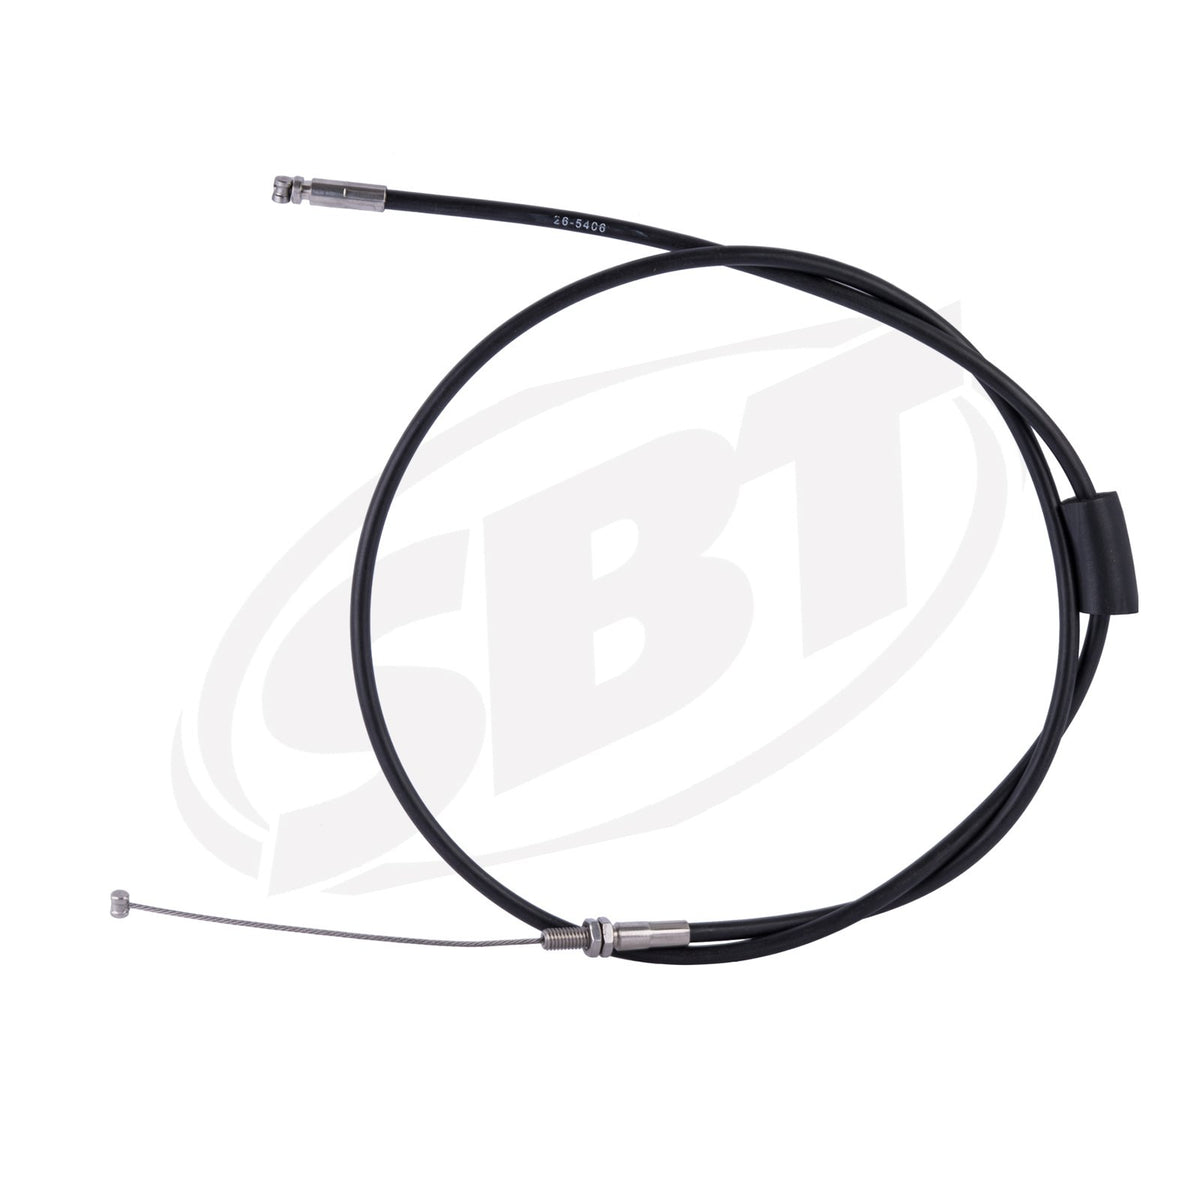 SBT Yamaha Trim Cable GP 1200 /GP 800 /SUV 1200 /XL 1200